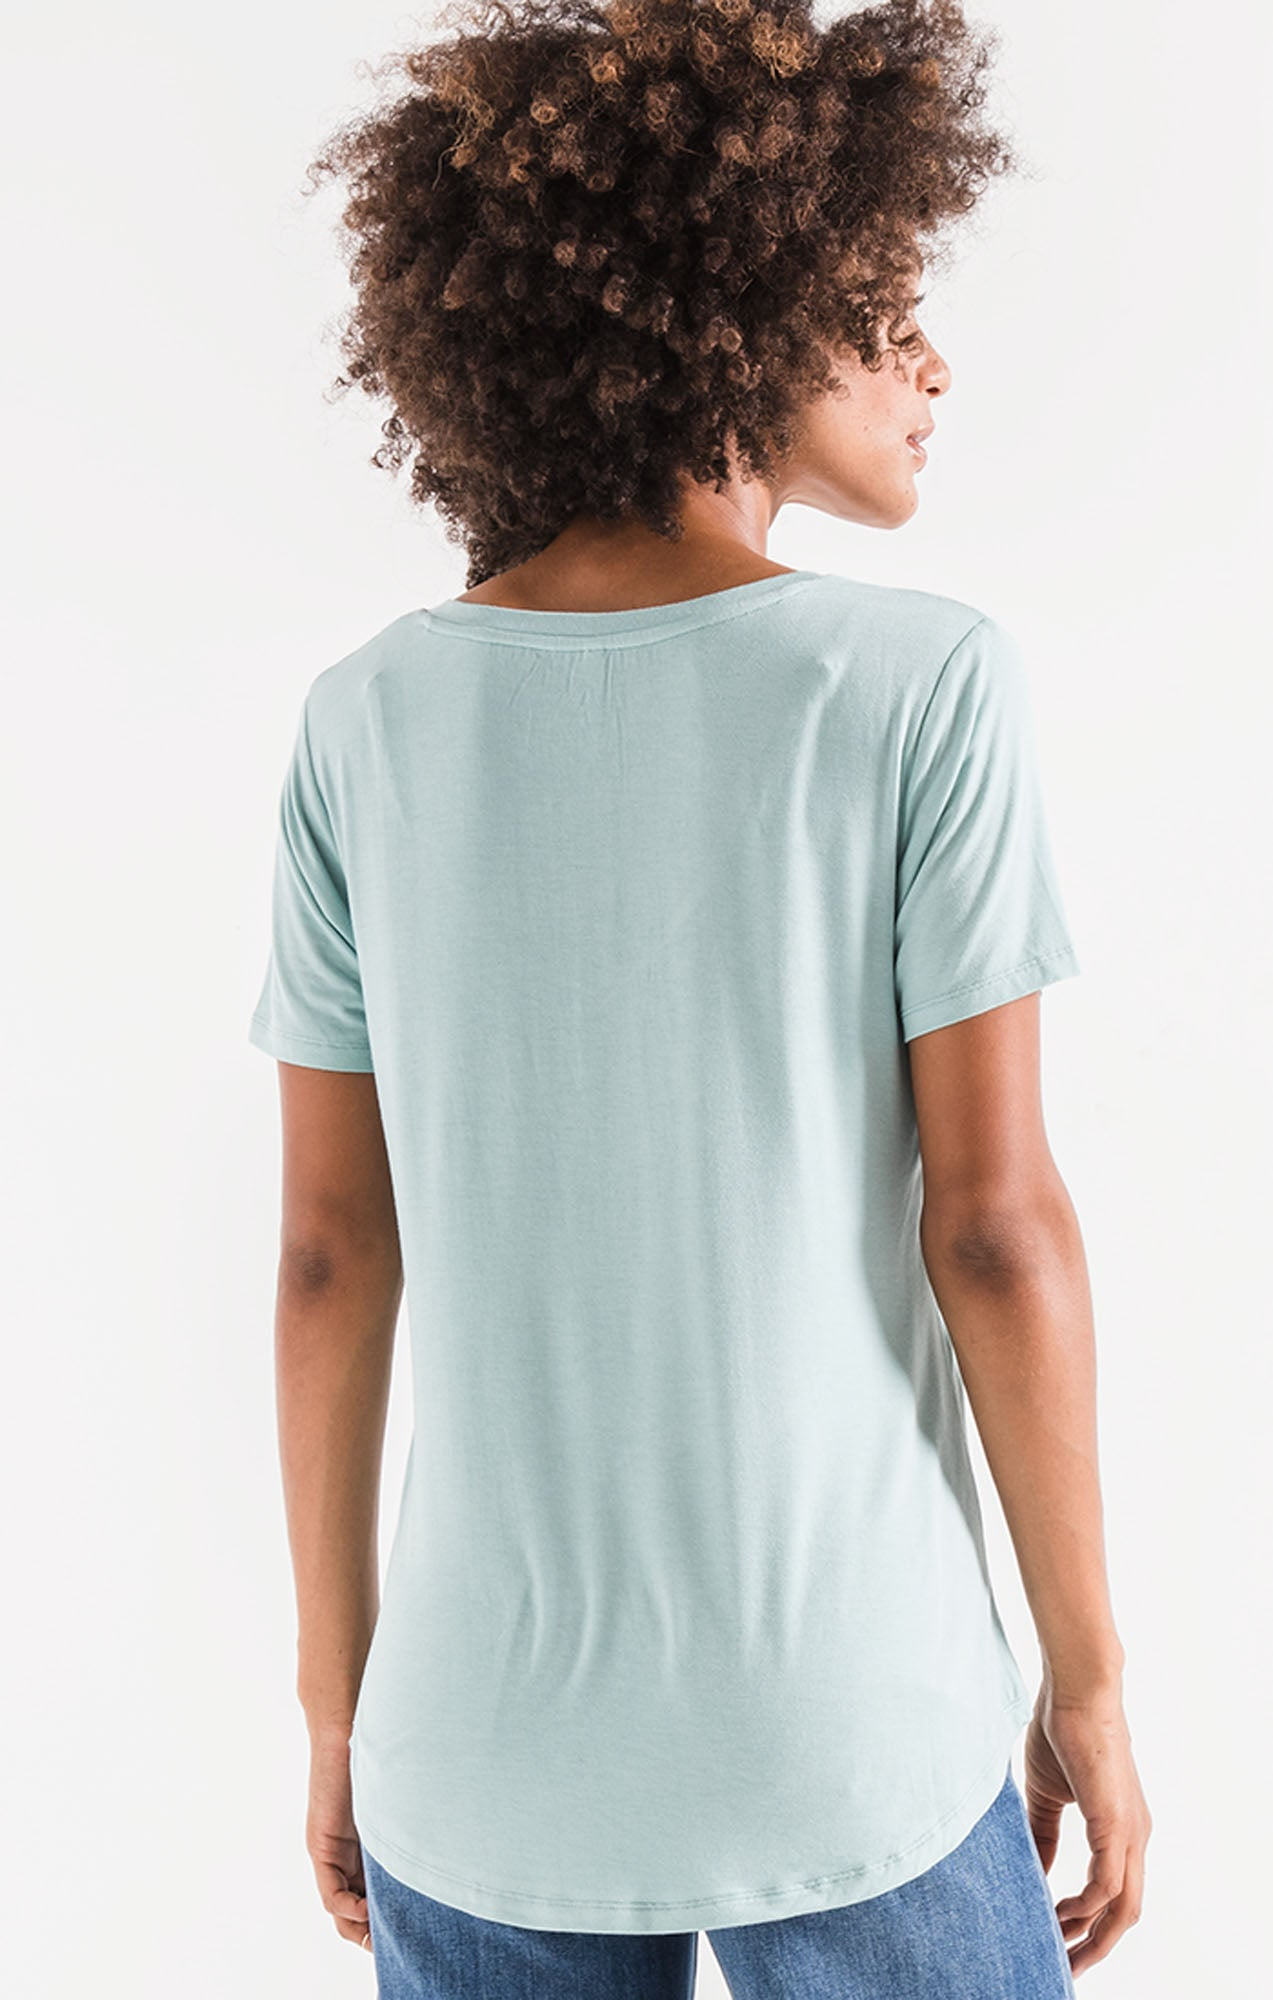 Tops The Sleek Jersey Pocket Tee Fair Aqua